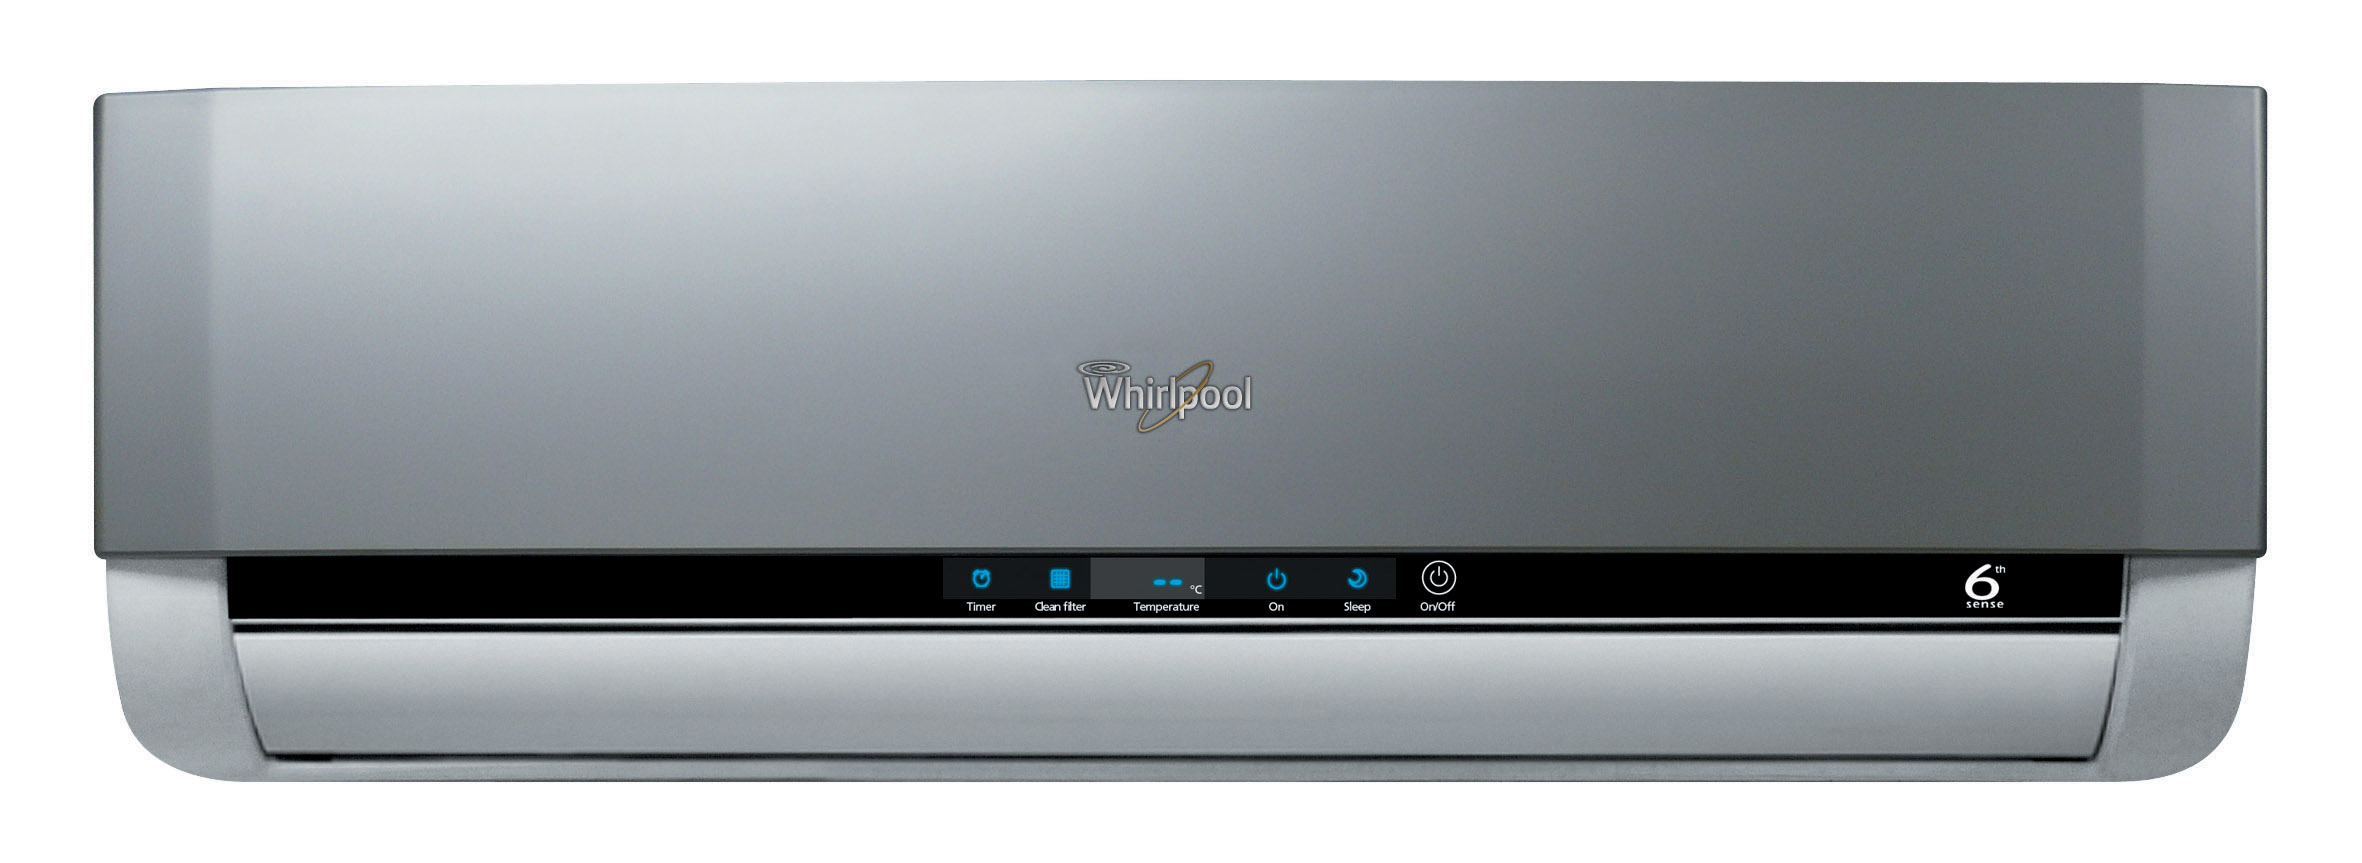 whirlpool service center in keelkattalai, whirlpool service center in kelambakkam, whirlpool service center in kodambakkam, whirlpool service center in korattur, whirlpool service center in kottivakkam, whirlpool service center in kotturpuram